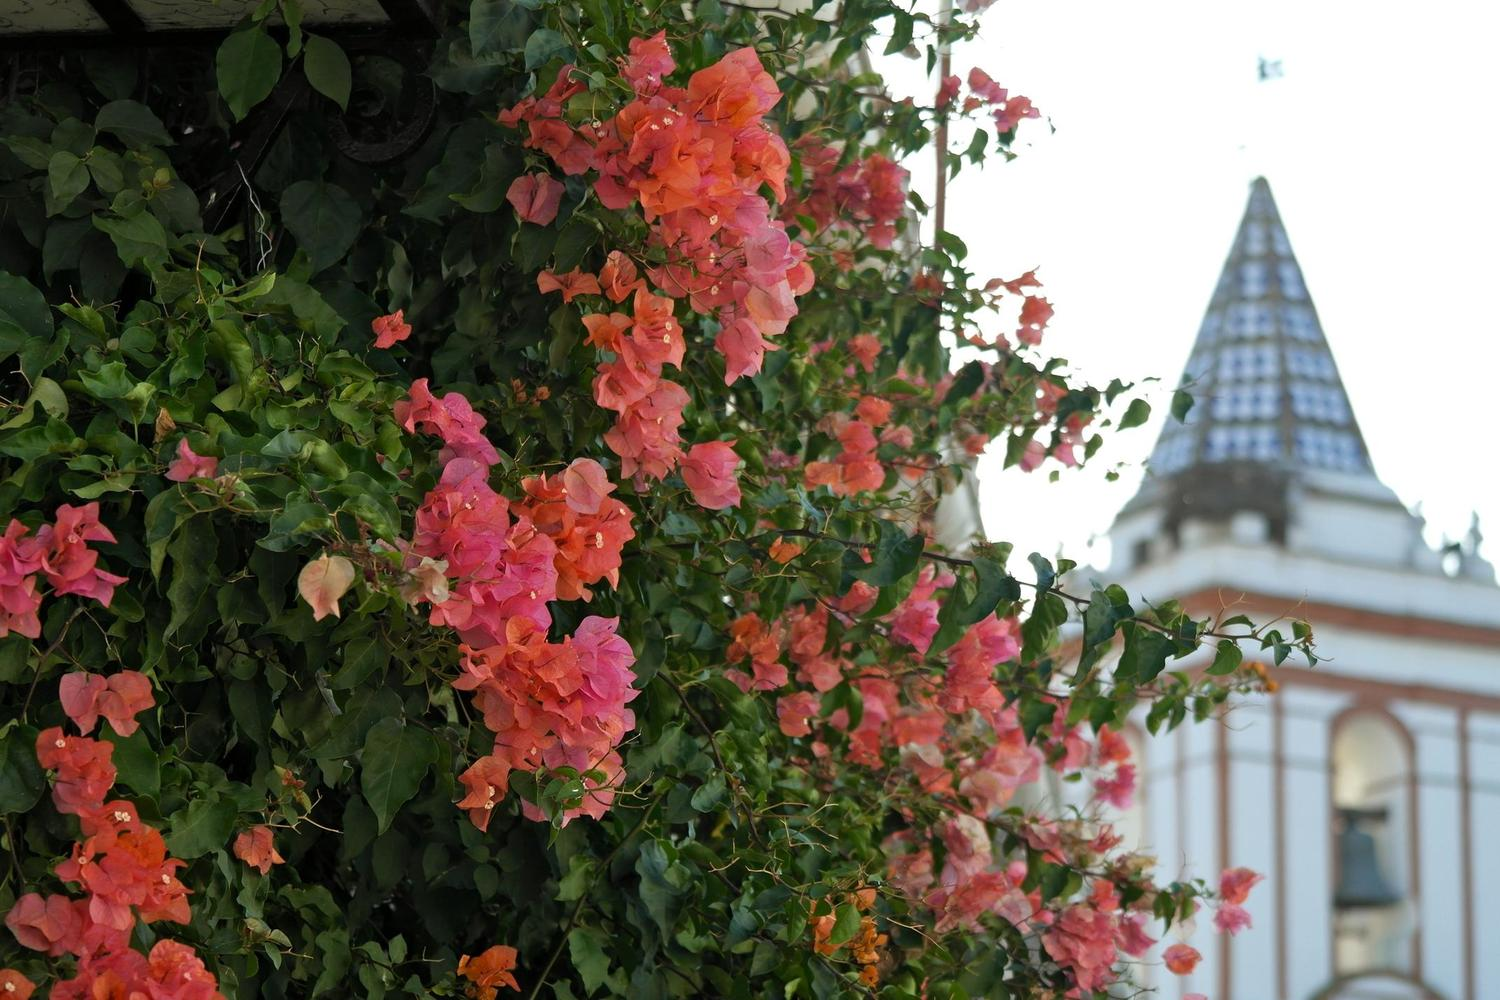 Flowers in the main square of Cortelazor